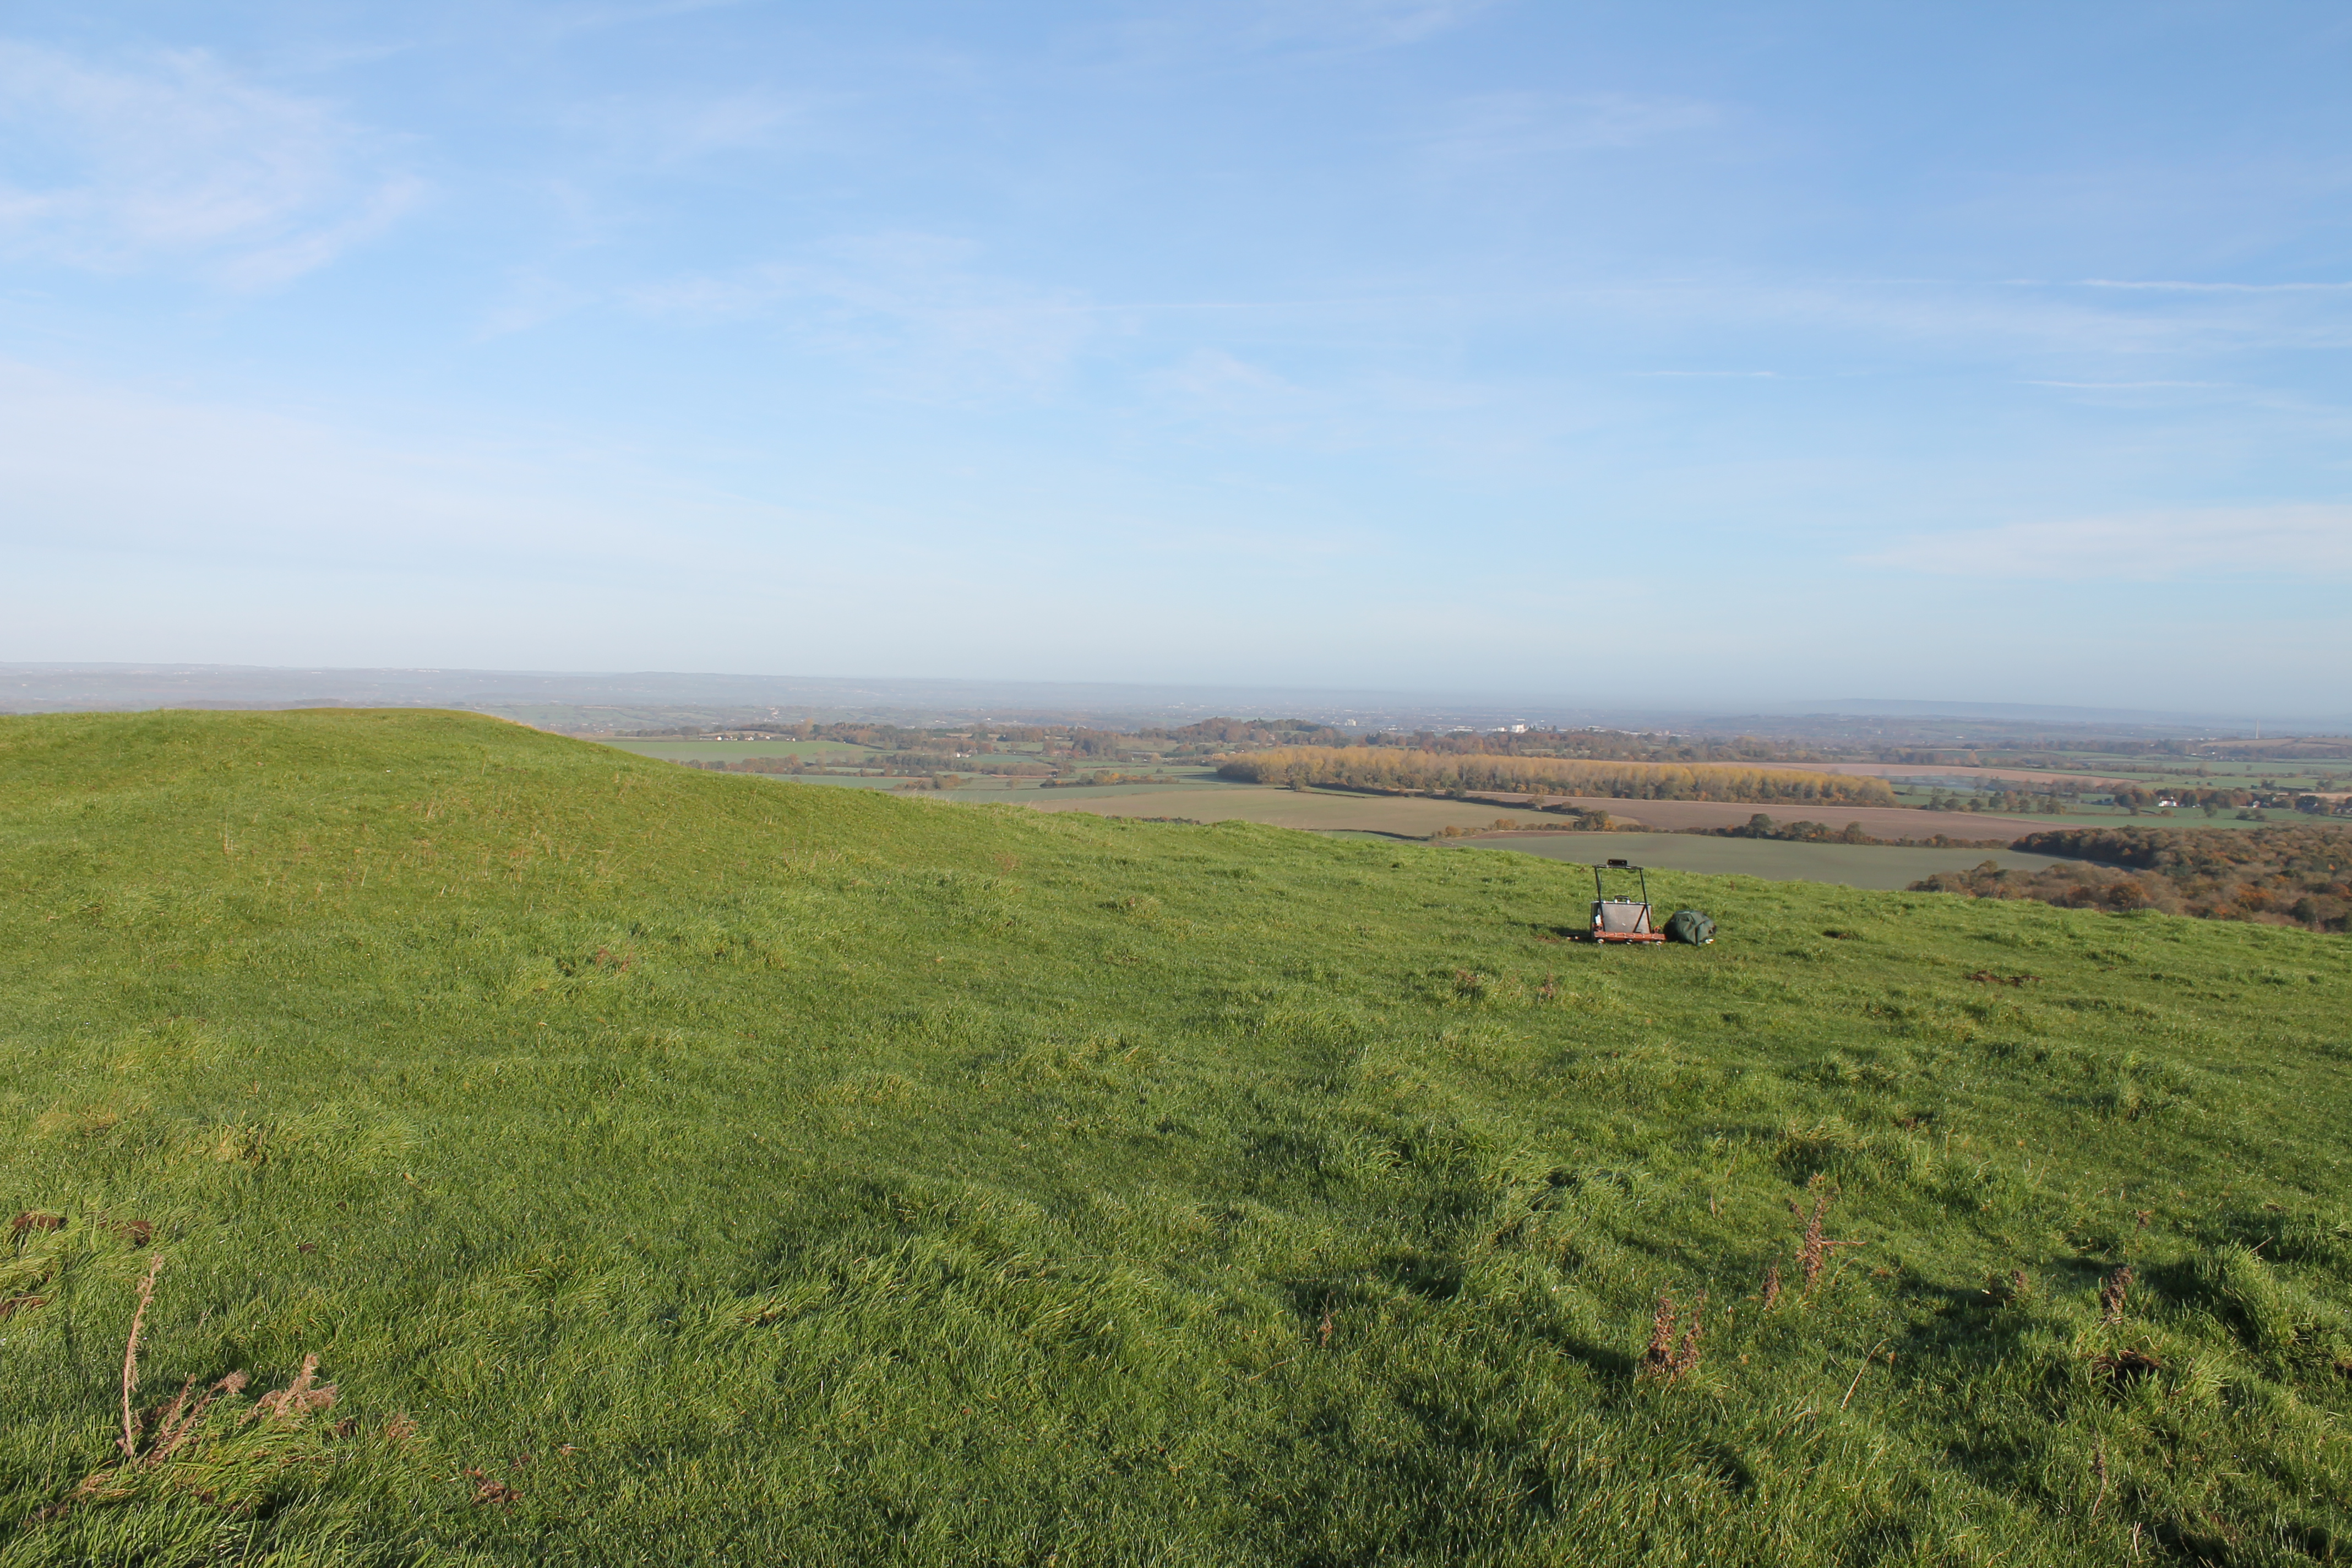 Early morning on Cley Hill  with my resistivity meter for scale. Not much use for anything else at the moment.